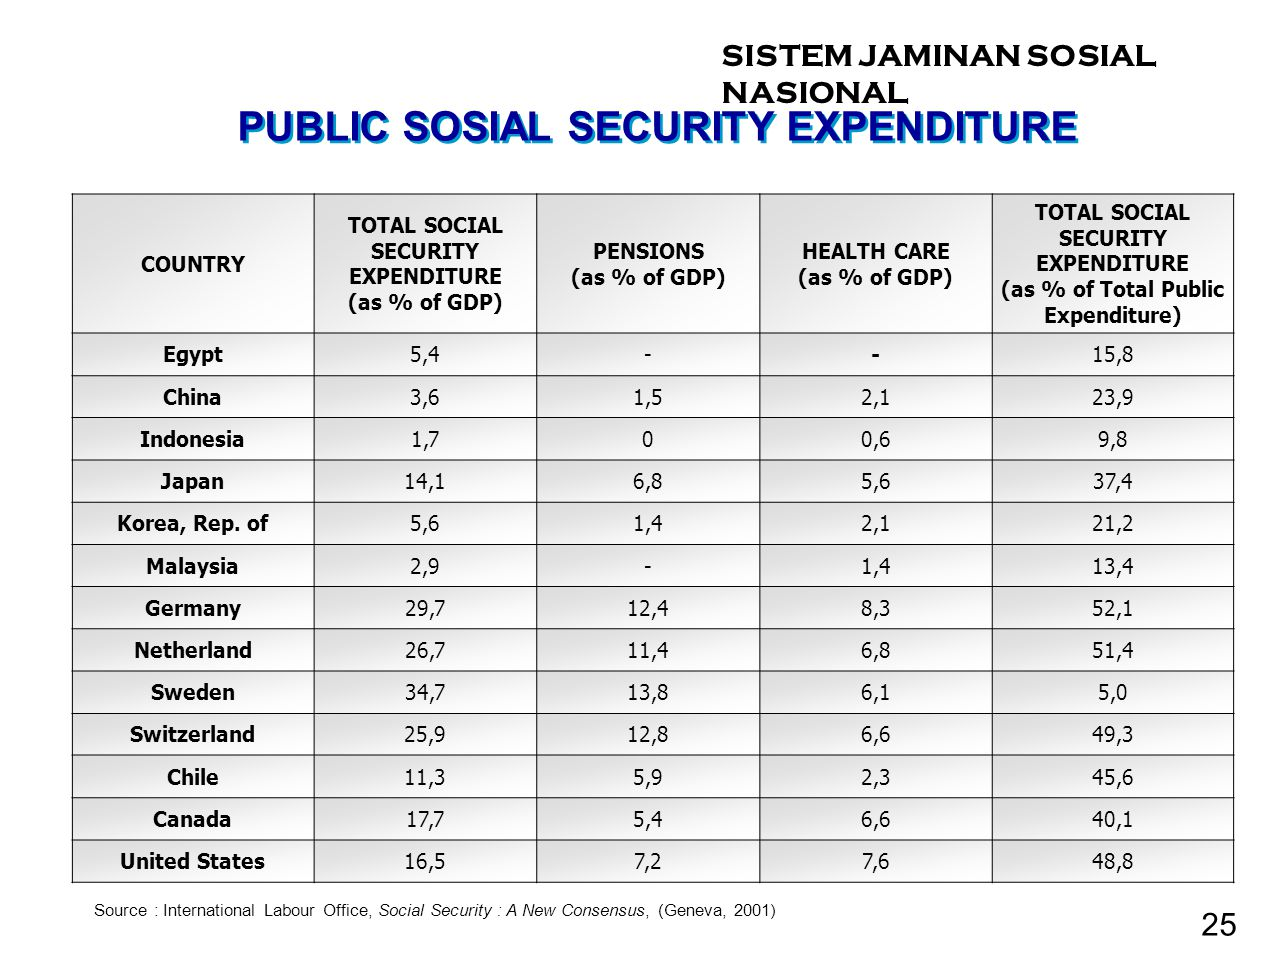 TOTAL SOCIAL SECURITY EXPENDITURE (as % of Total Public Expenditure)